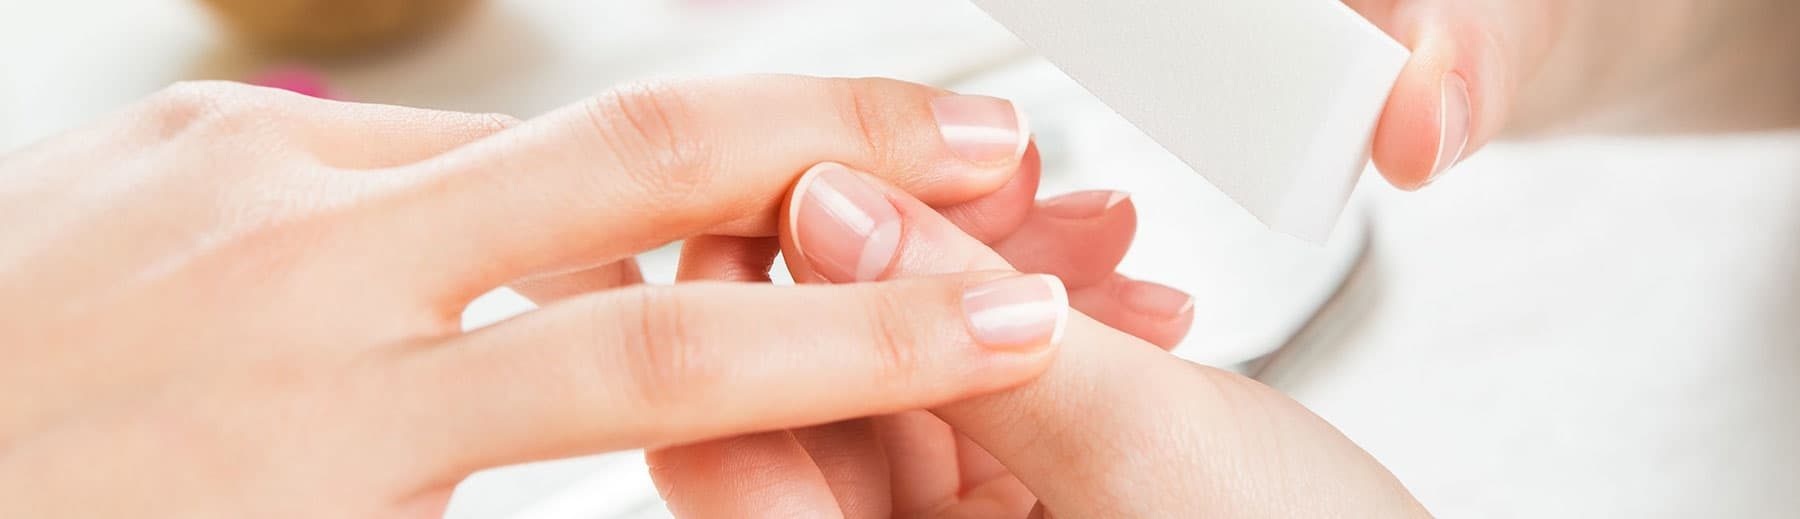 Manicures And Pedicures Certificate International Beauty